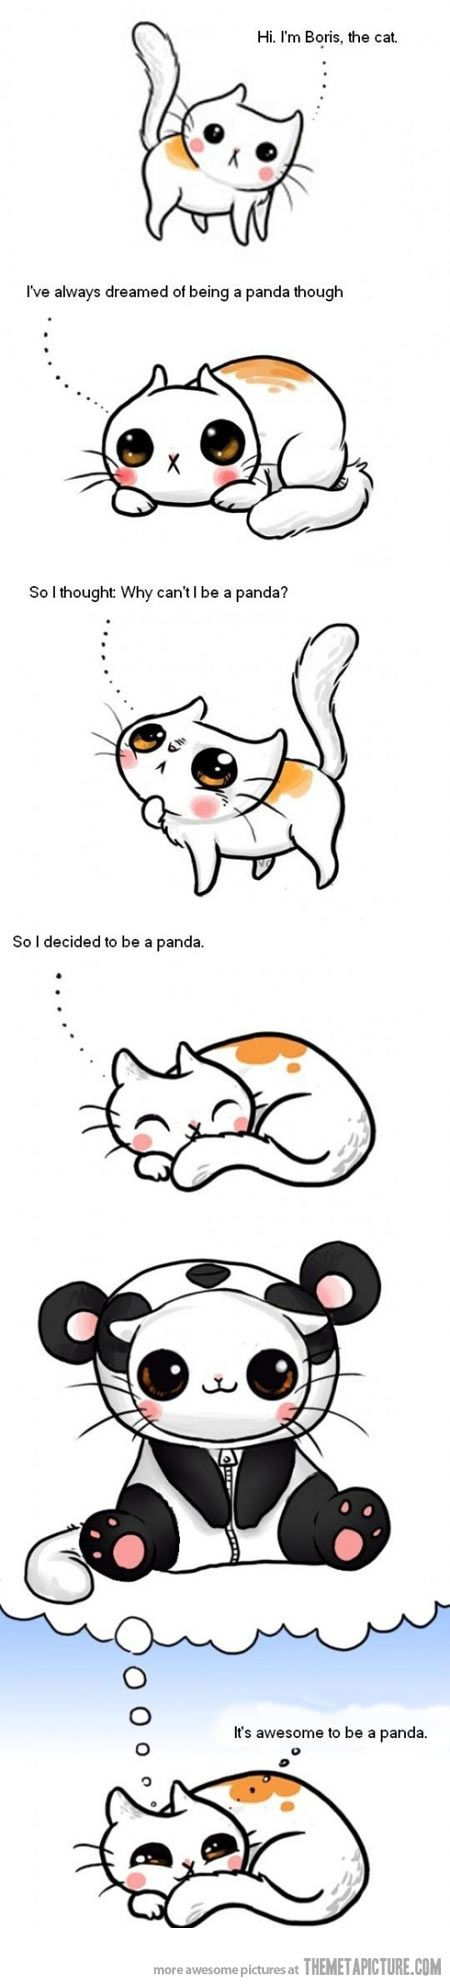 Why can't I be a panda?